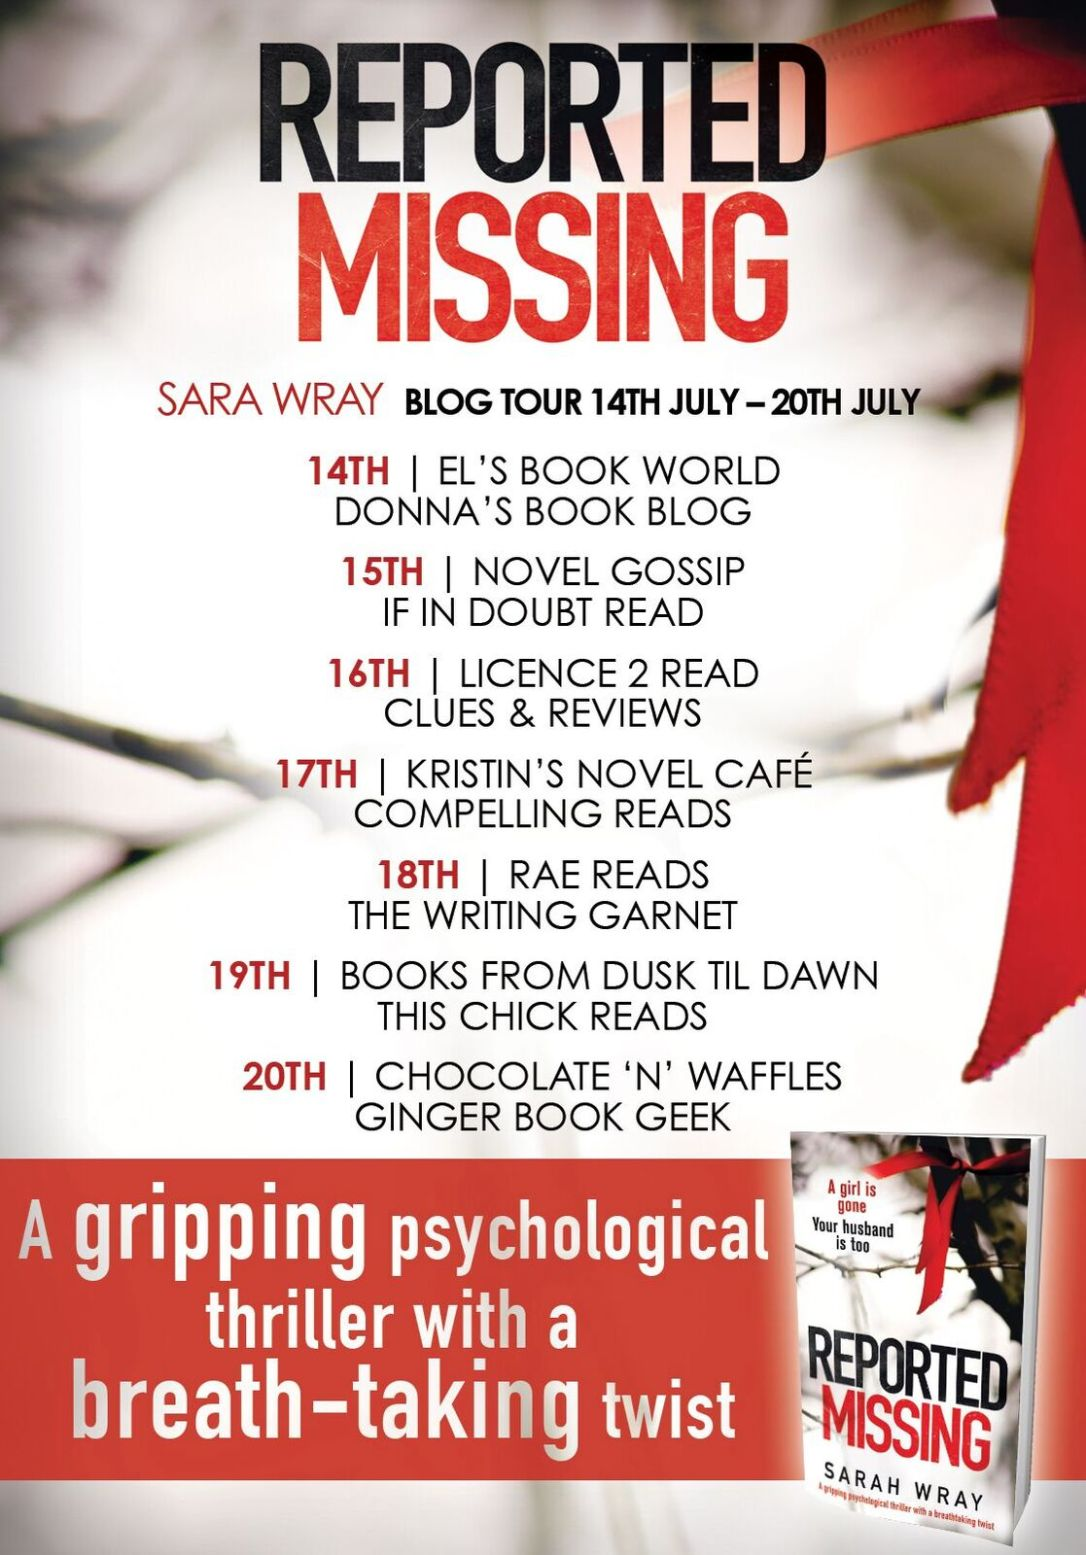 Reported-Missing-Blog-Tour Graphic